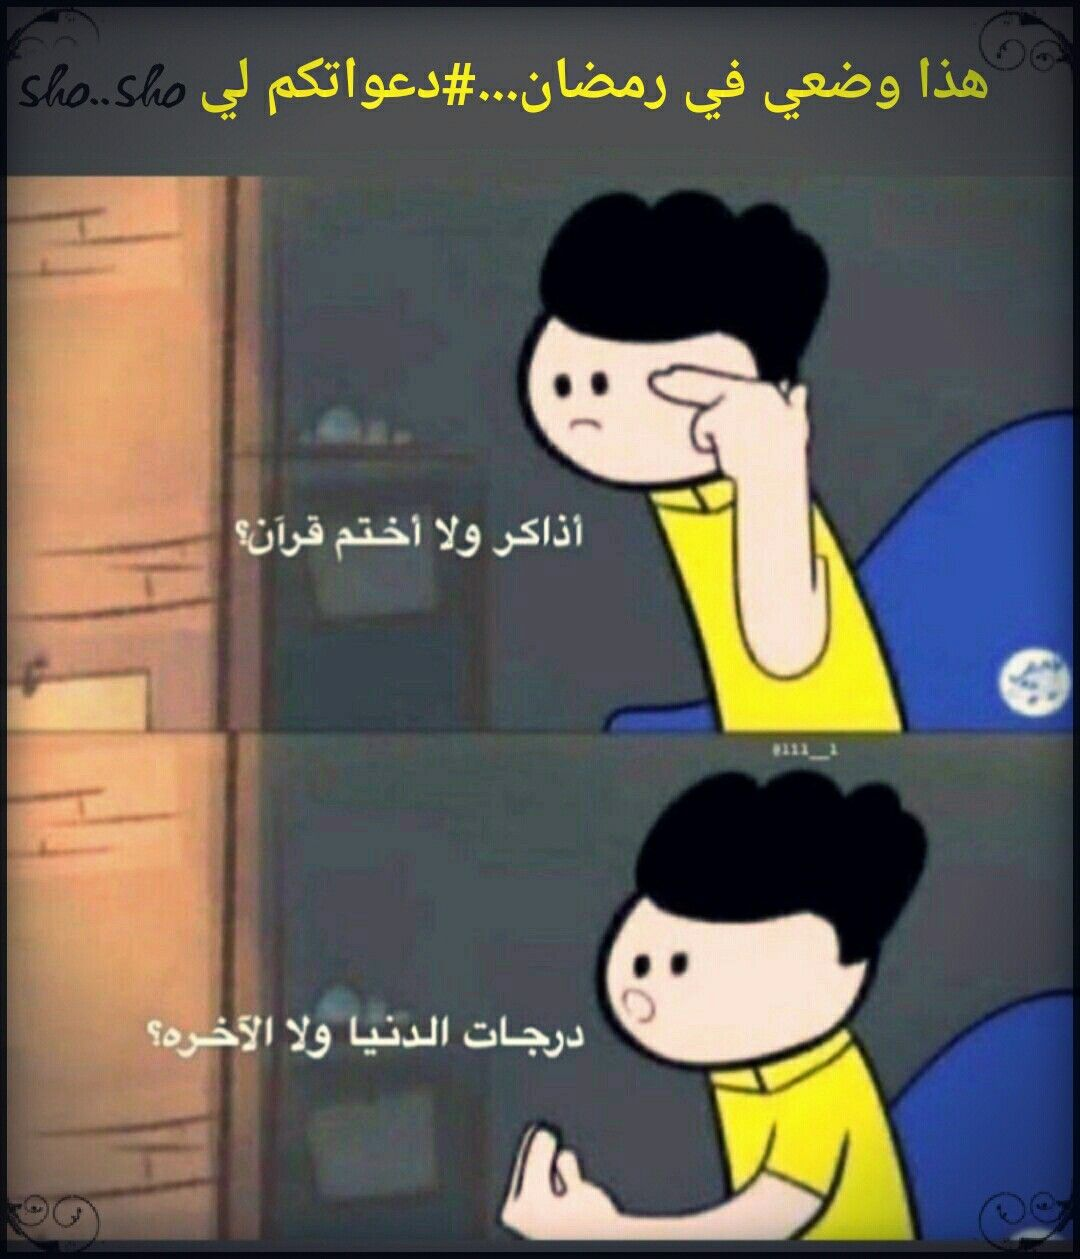 Pin By Um Asaad On Blague Funny Arabic Quotes Funny Emoji Arabic Funny